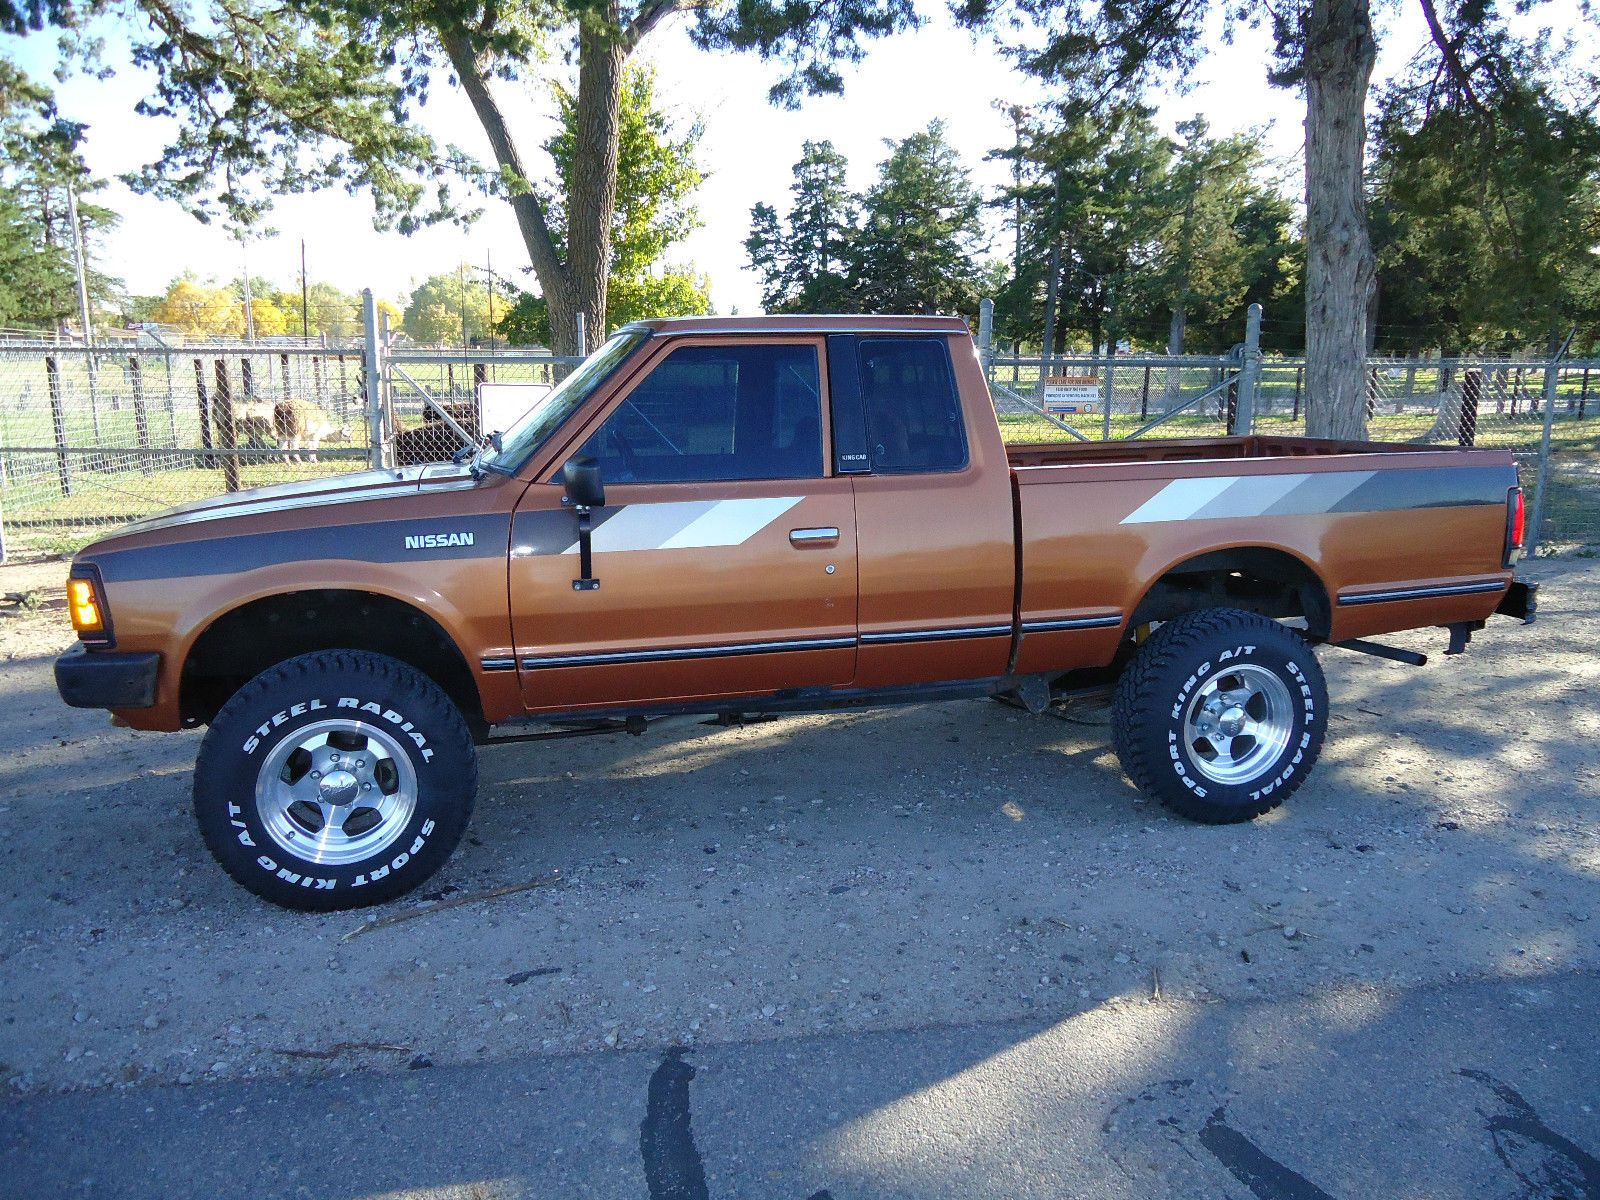 Nissan Other Deluxe Extended Cab Pickup 2 Door Nissan Nissan Pickup Truck Datsun Pickup